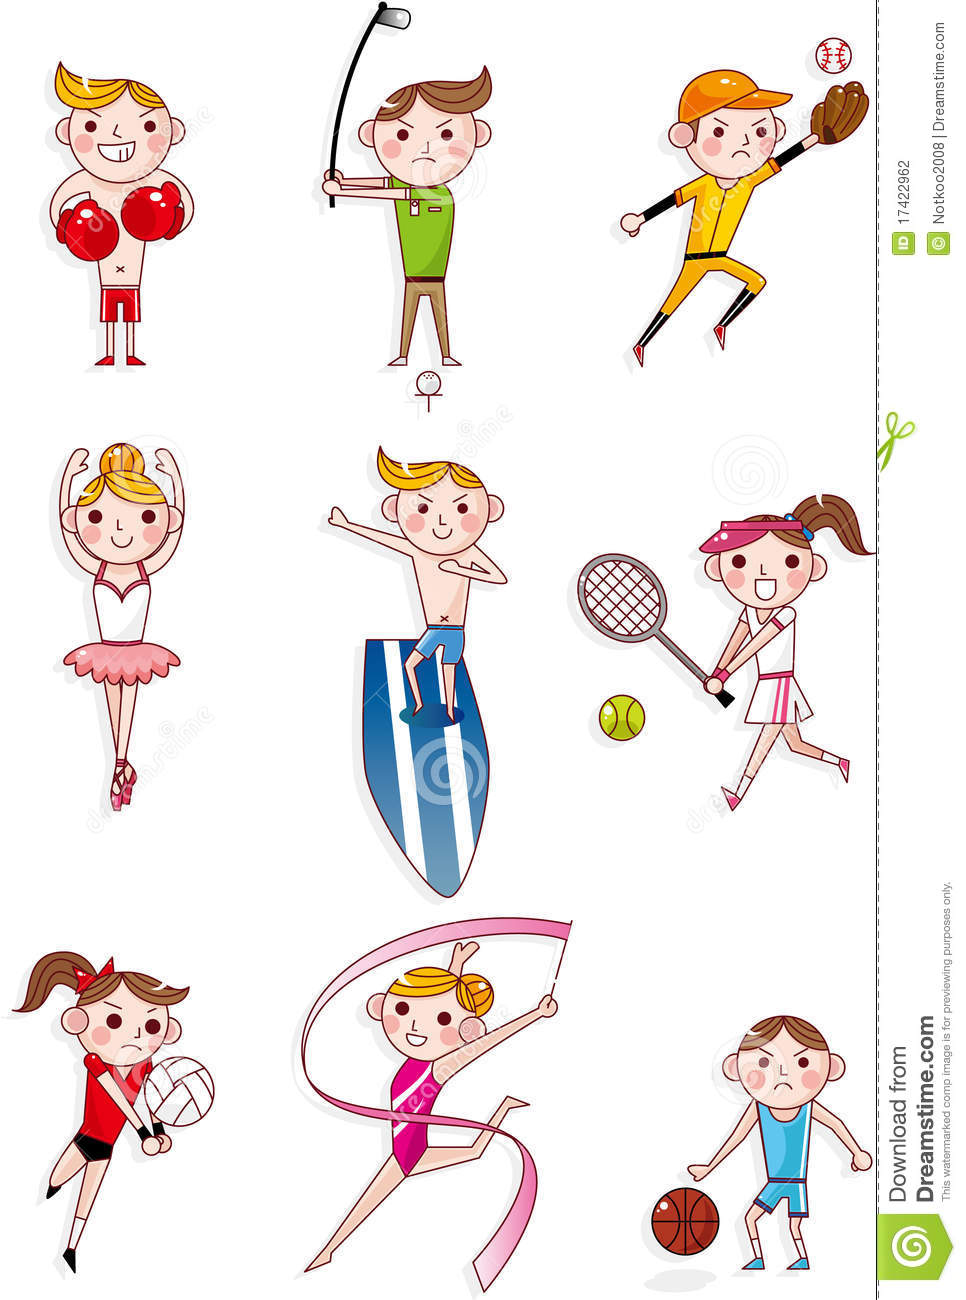 Santa Claus Girl Wallpaper Cartoon Sport Stock Vector Image Of Background Ball